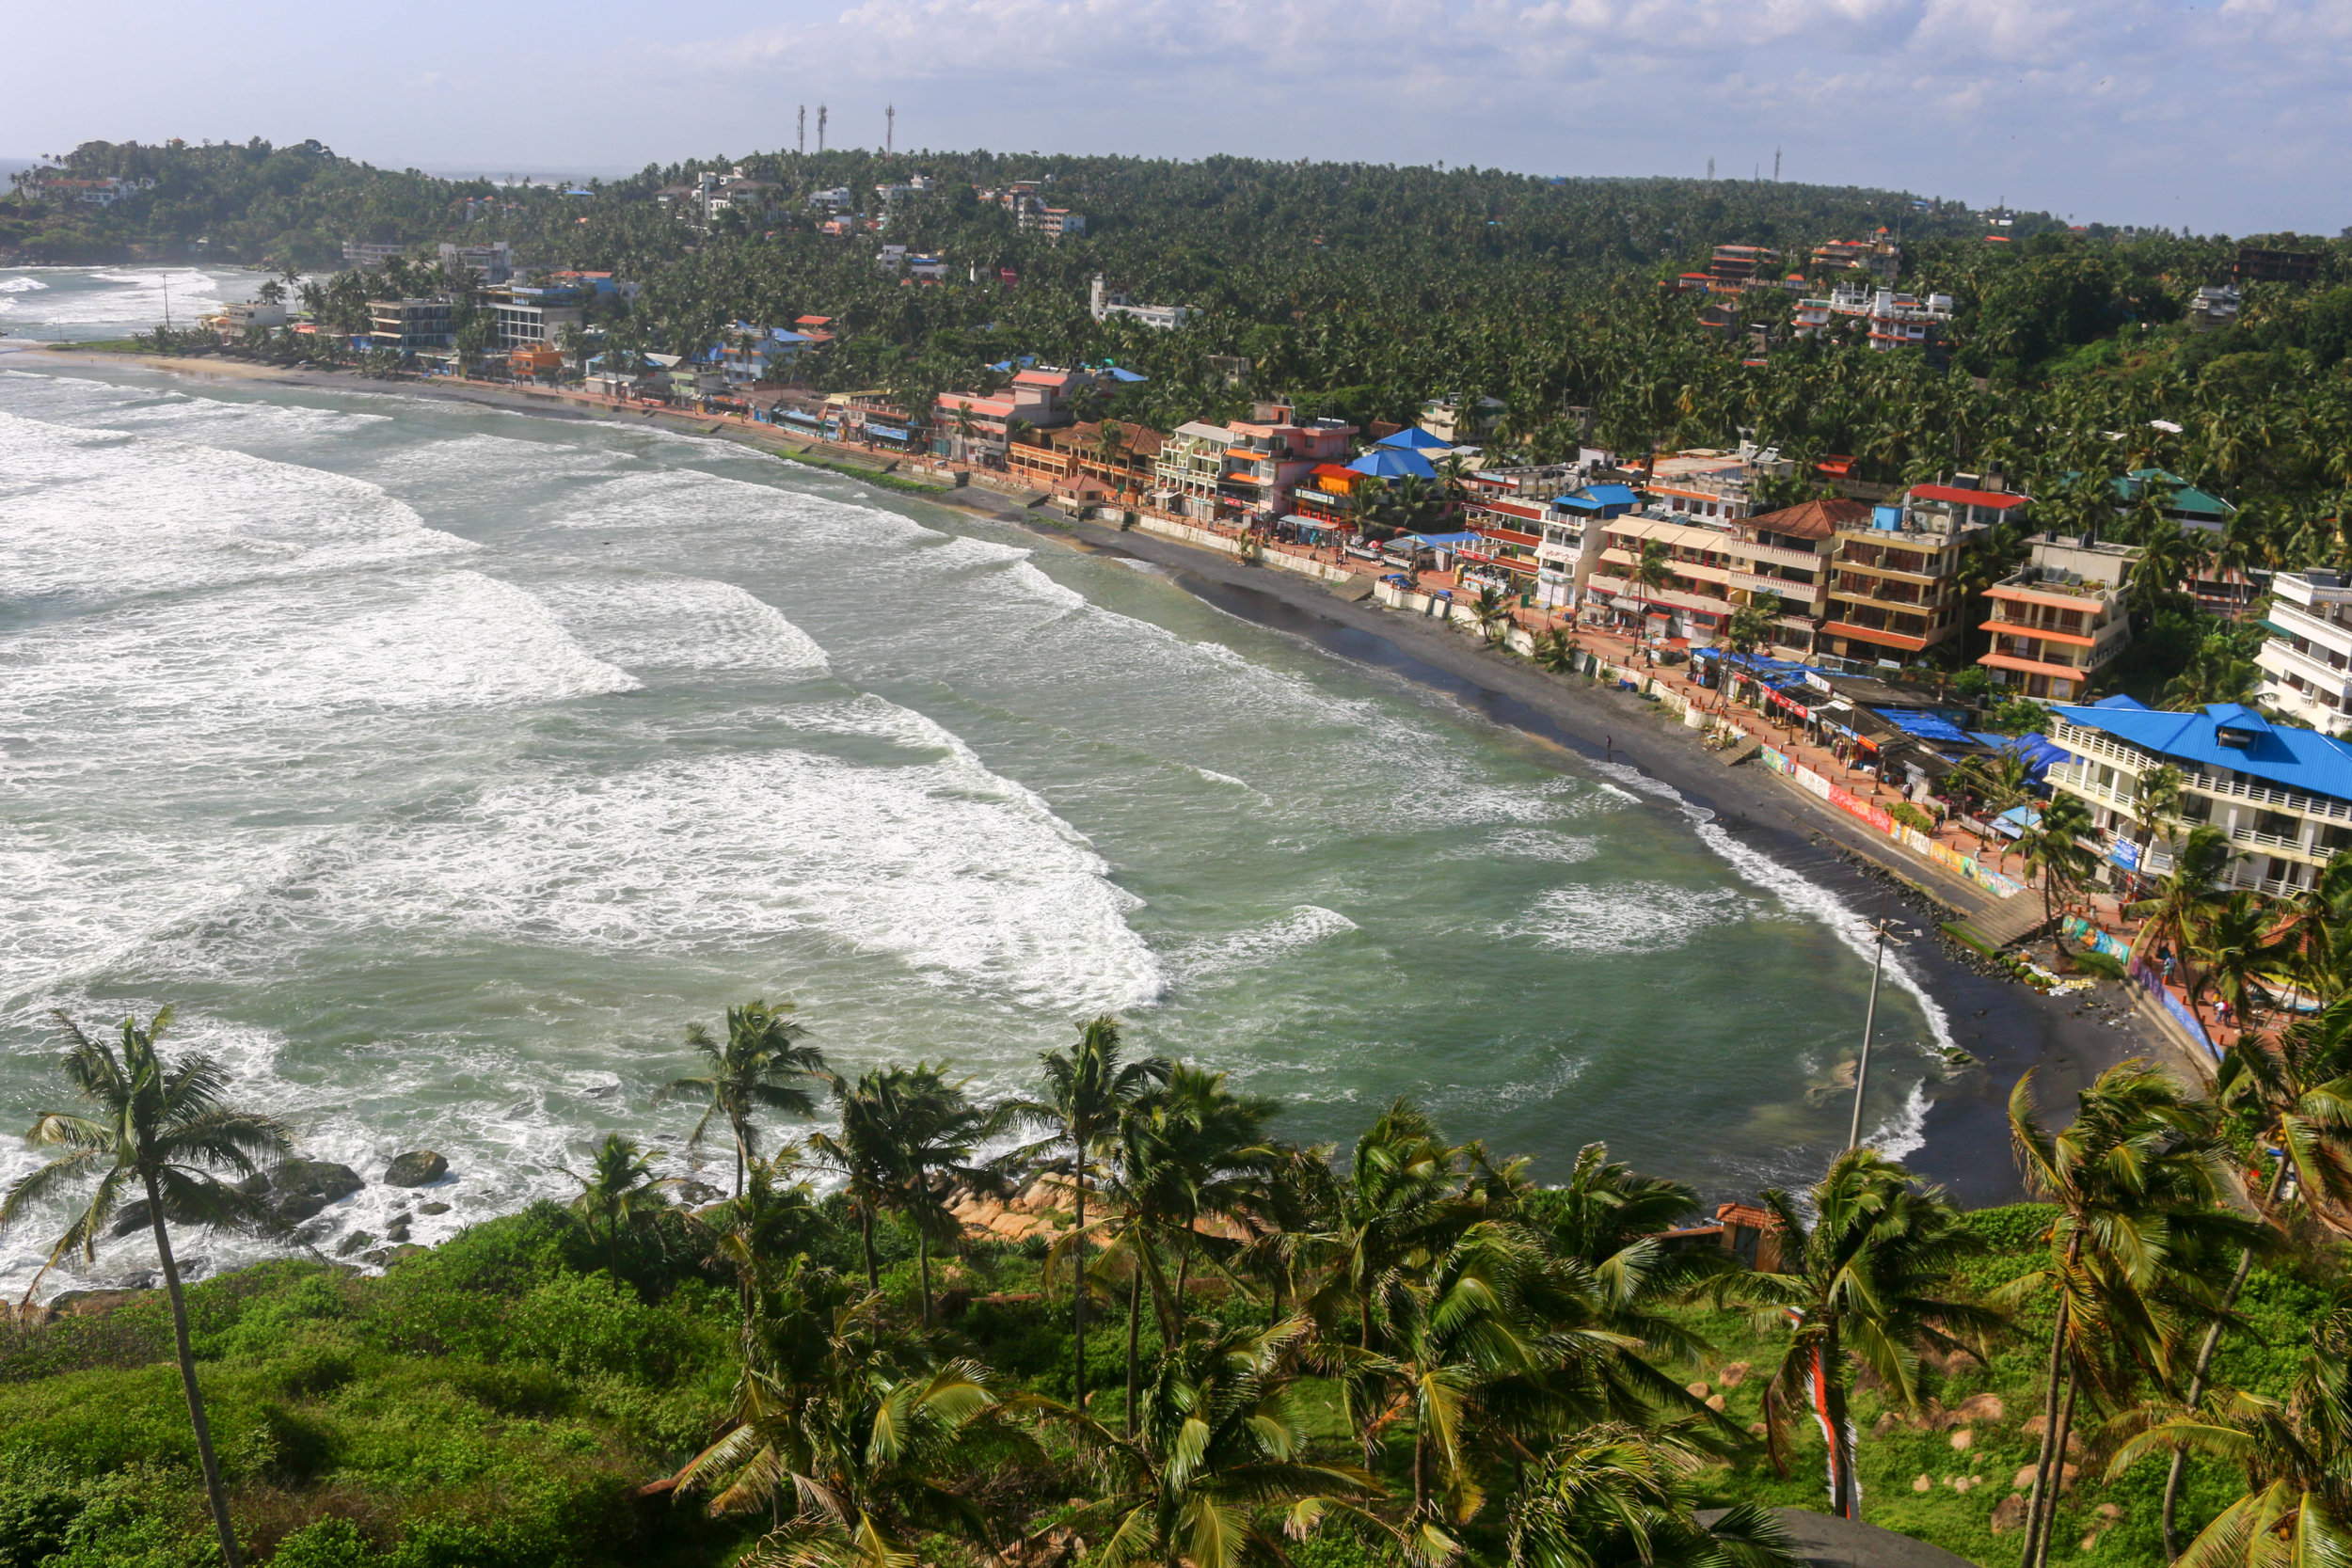 Lighthouse Beach - one of the many tourist destinations along the coast of Kerala, India and home of our new  Plastic Free for the Sea  initiative .